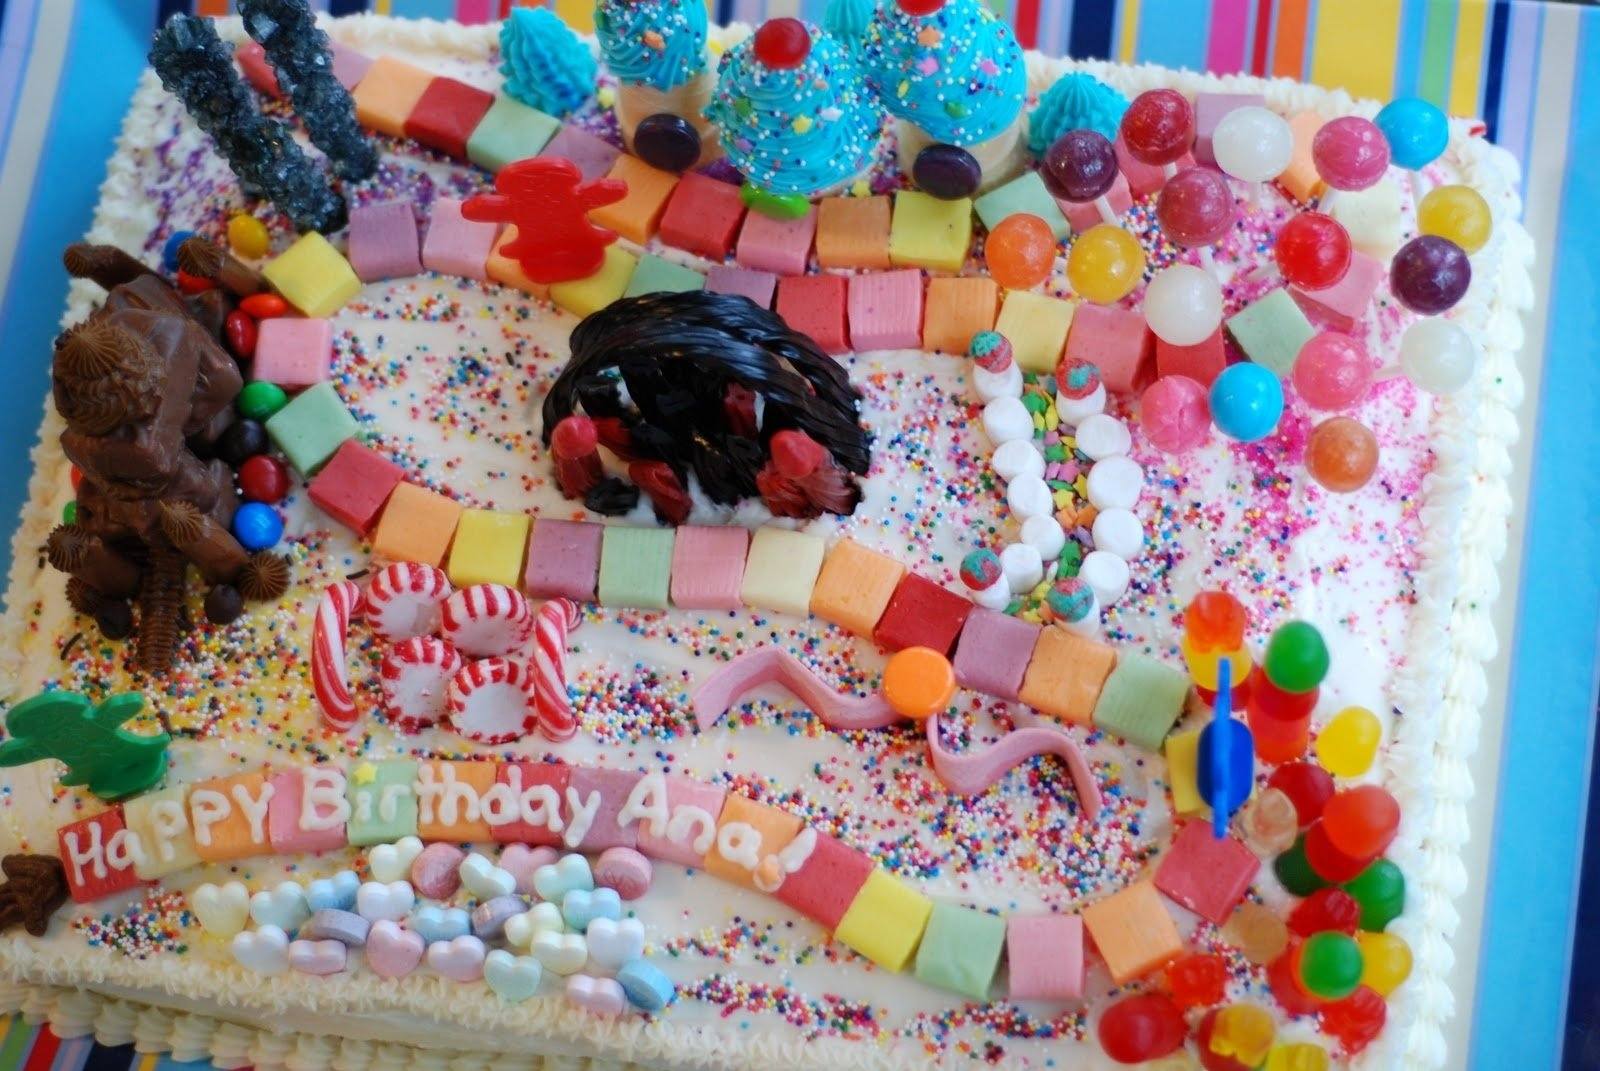 10 Famous Candy Themed Birthday Party Ideas candyland themed birthday party decorations candyland birthday 2020